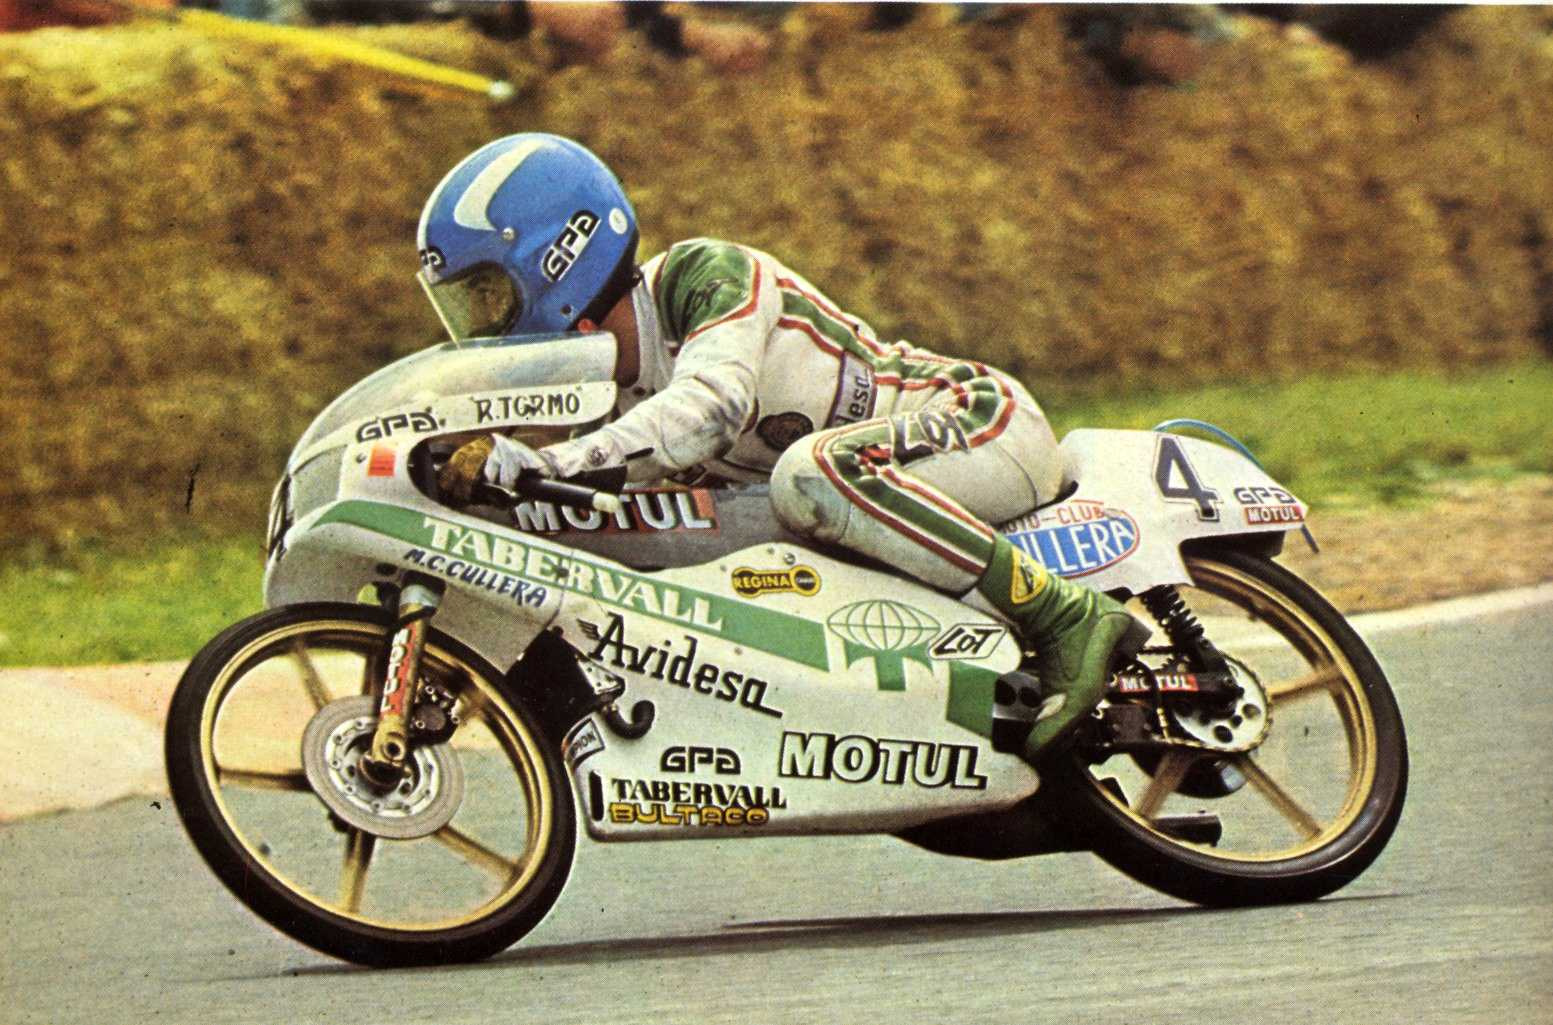 https://www.moto1pro.com/sites/default/files/ricardo-tormo-1981.jpg